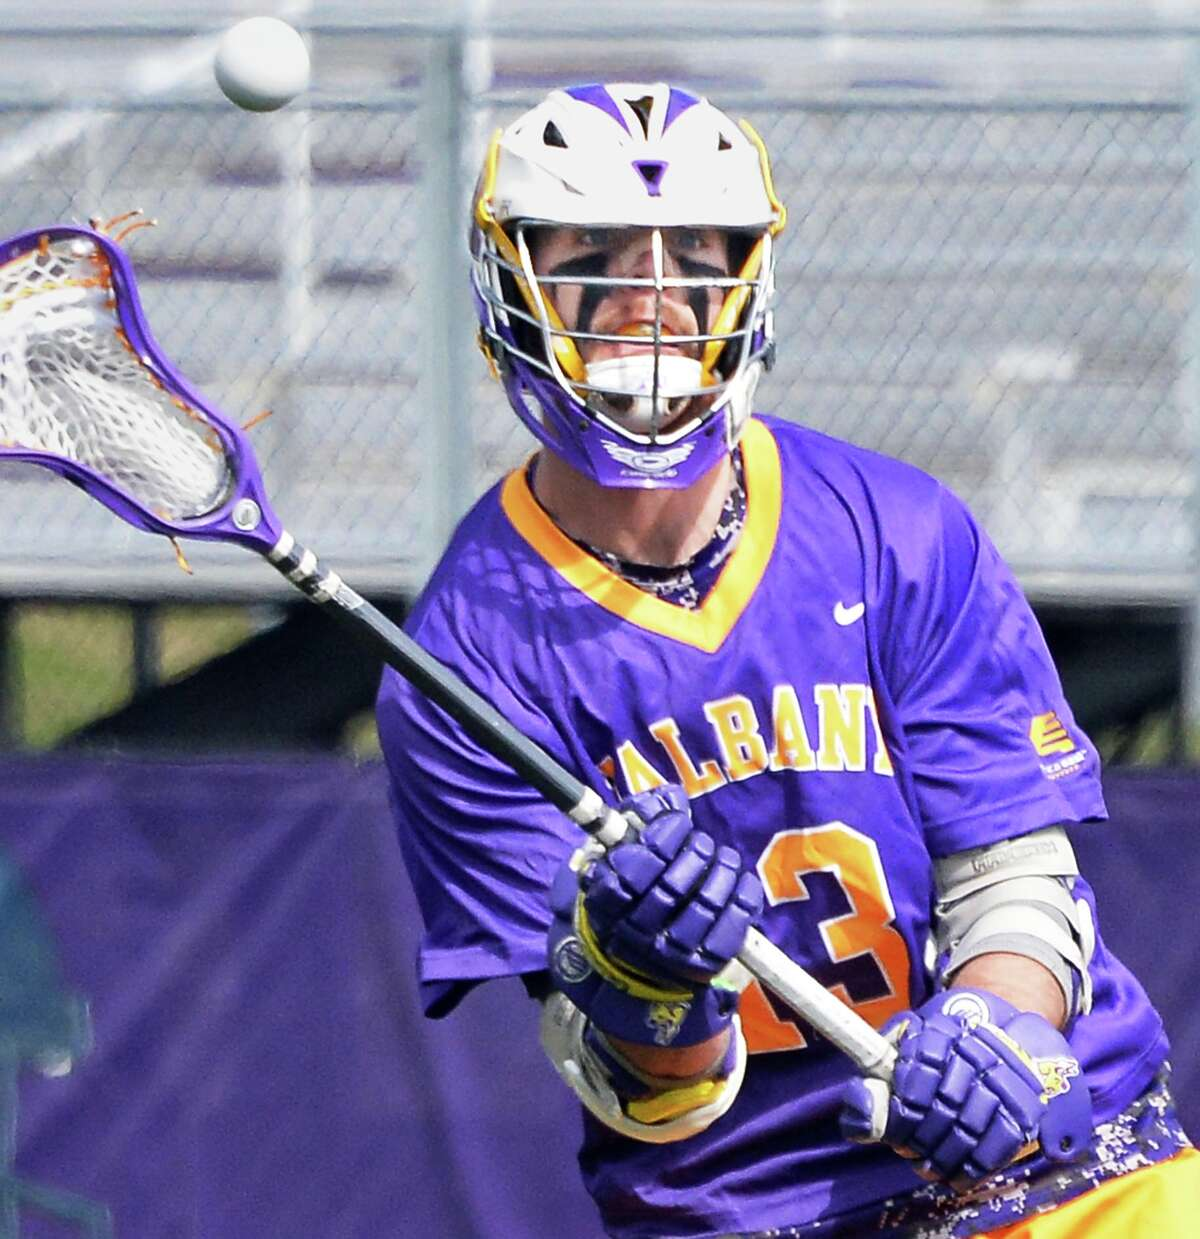 UAlbany's #13 Tim Cox fires off a pass during Saturday's game against Maryland-Baltimore County at Bob Ford Field April 25, 2015 in Albany, NY. (John Carl D'Annibale / Times Union)